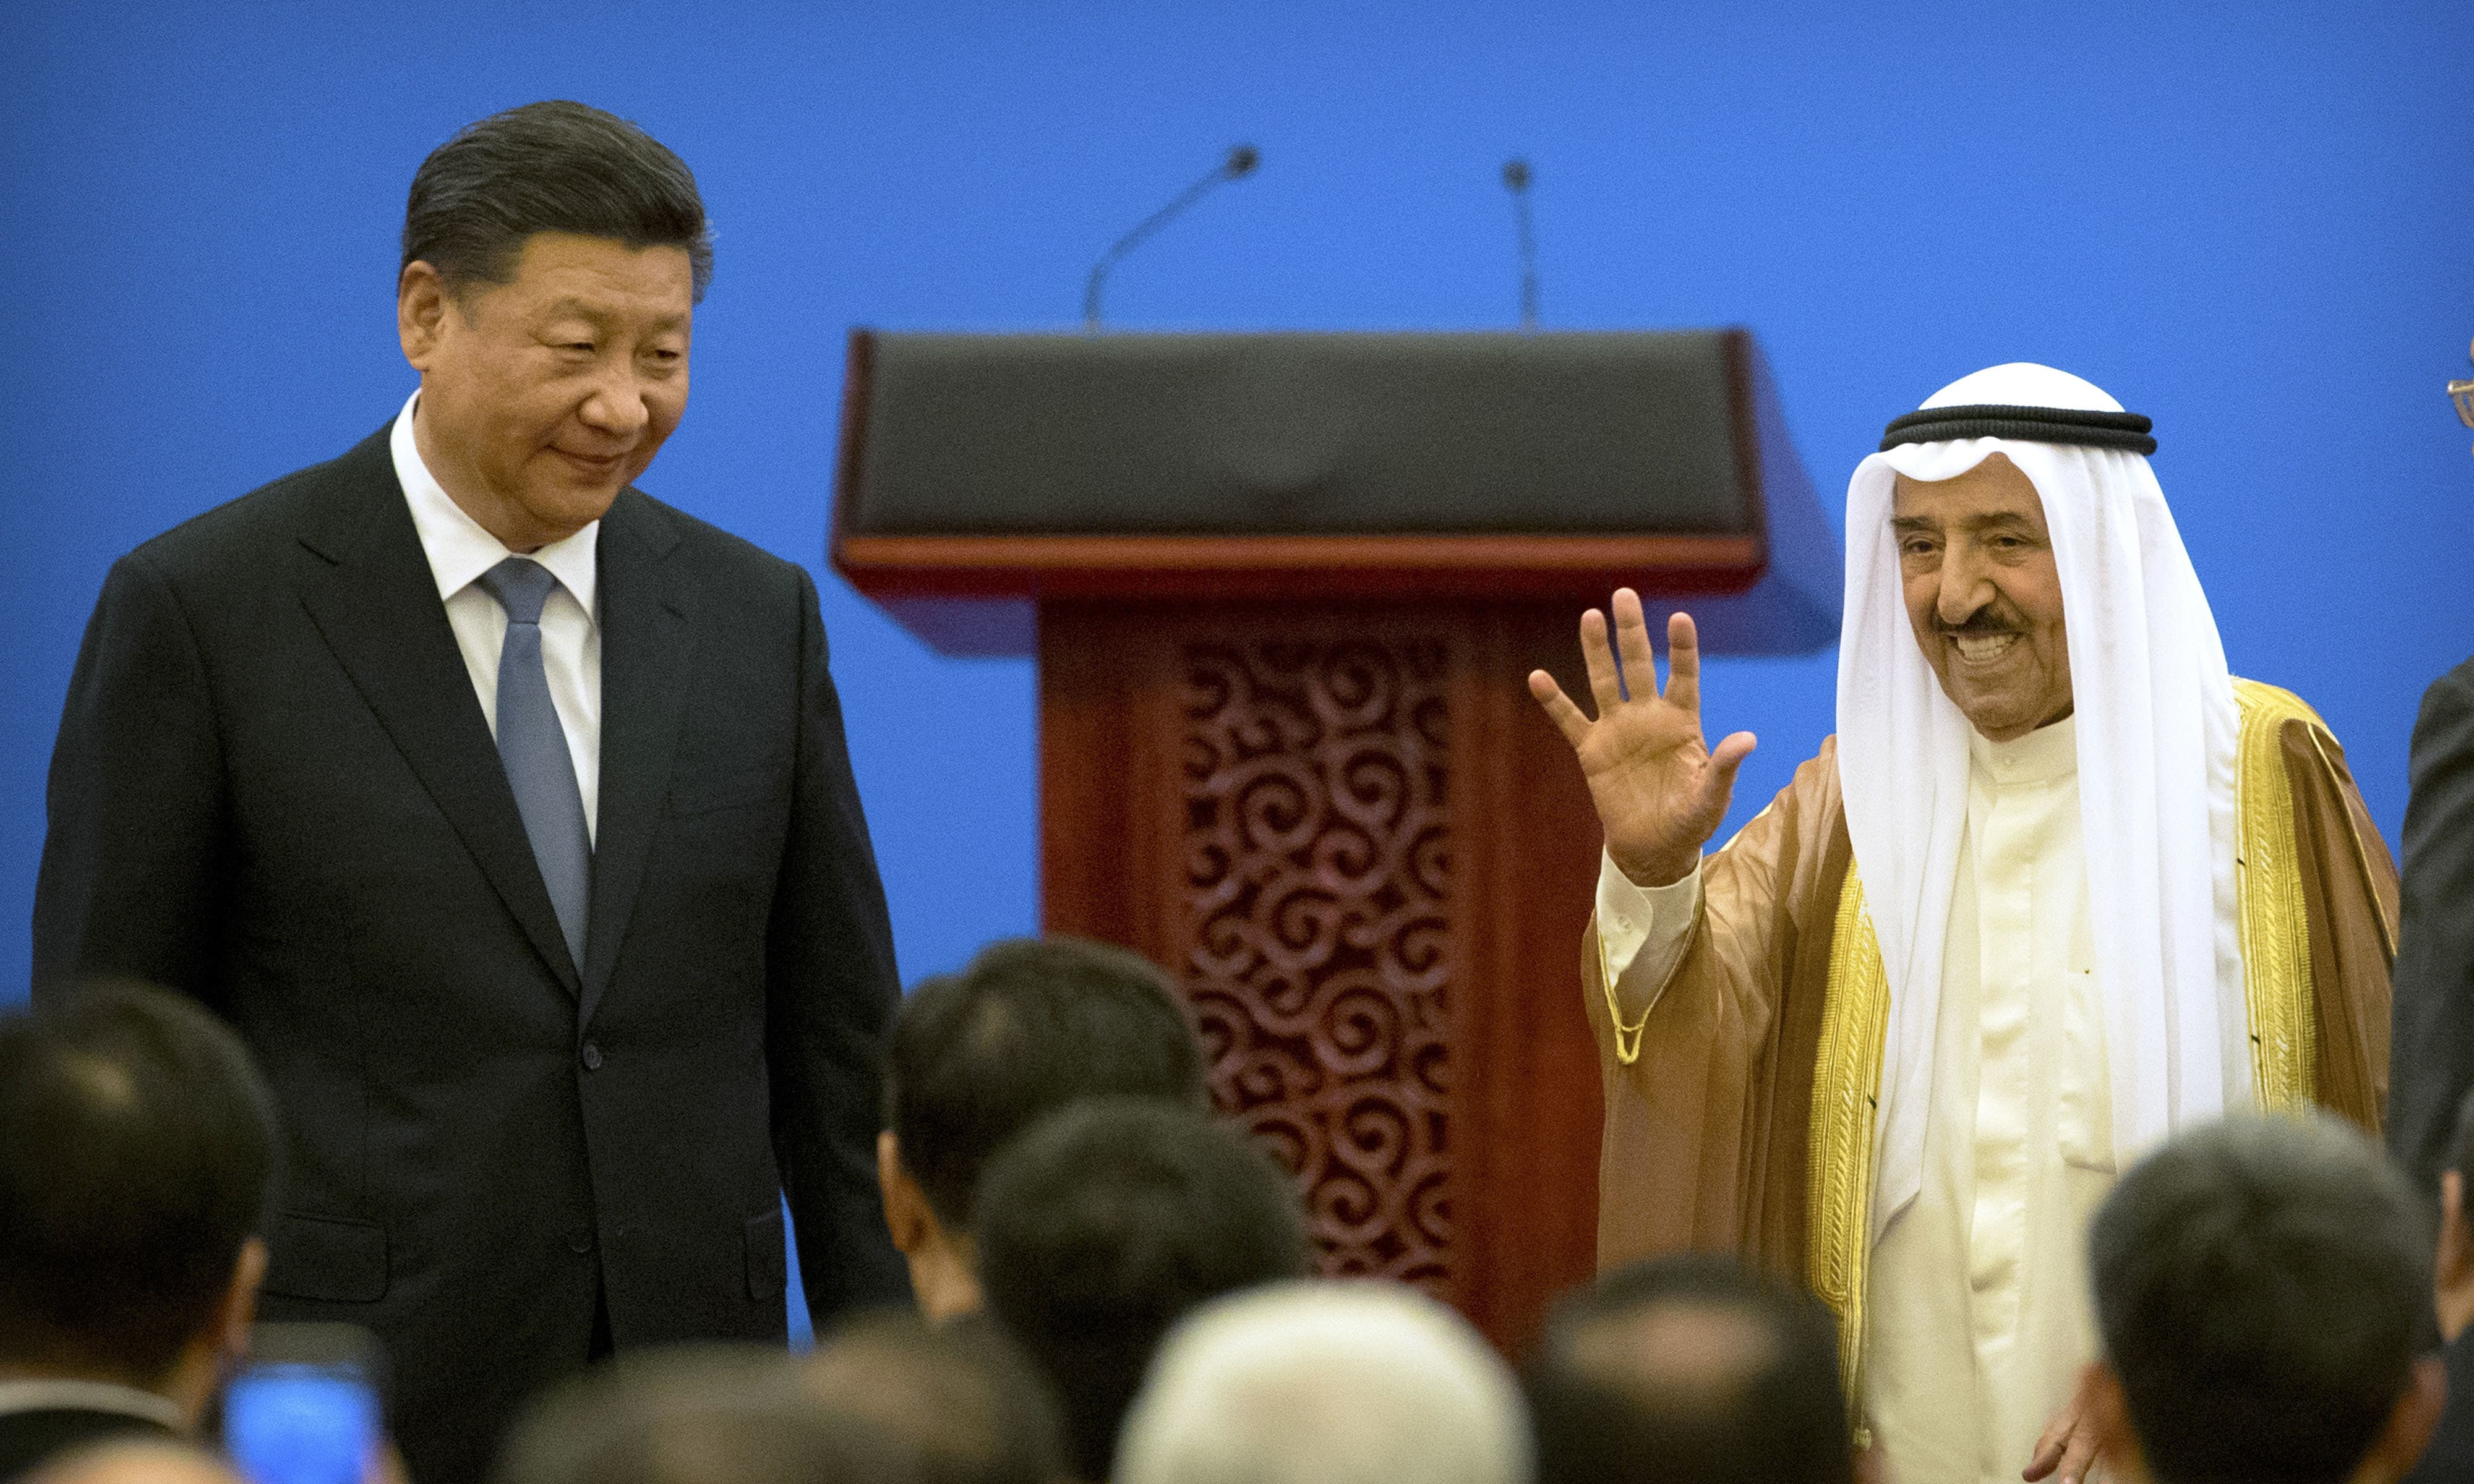 Kuwait's ruling emir, Sheikh Sabah Al Ahmad Al Sabah, right, waves as he stands with Chinese President Xi Jinping after speaking during the opening session of the 8th Ministerial Meeting of the China-Arab States Cooperation Forum in Beijing, Tuesday, July 10, 2018. — AP